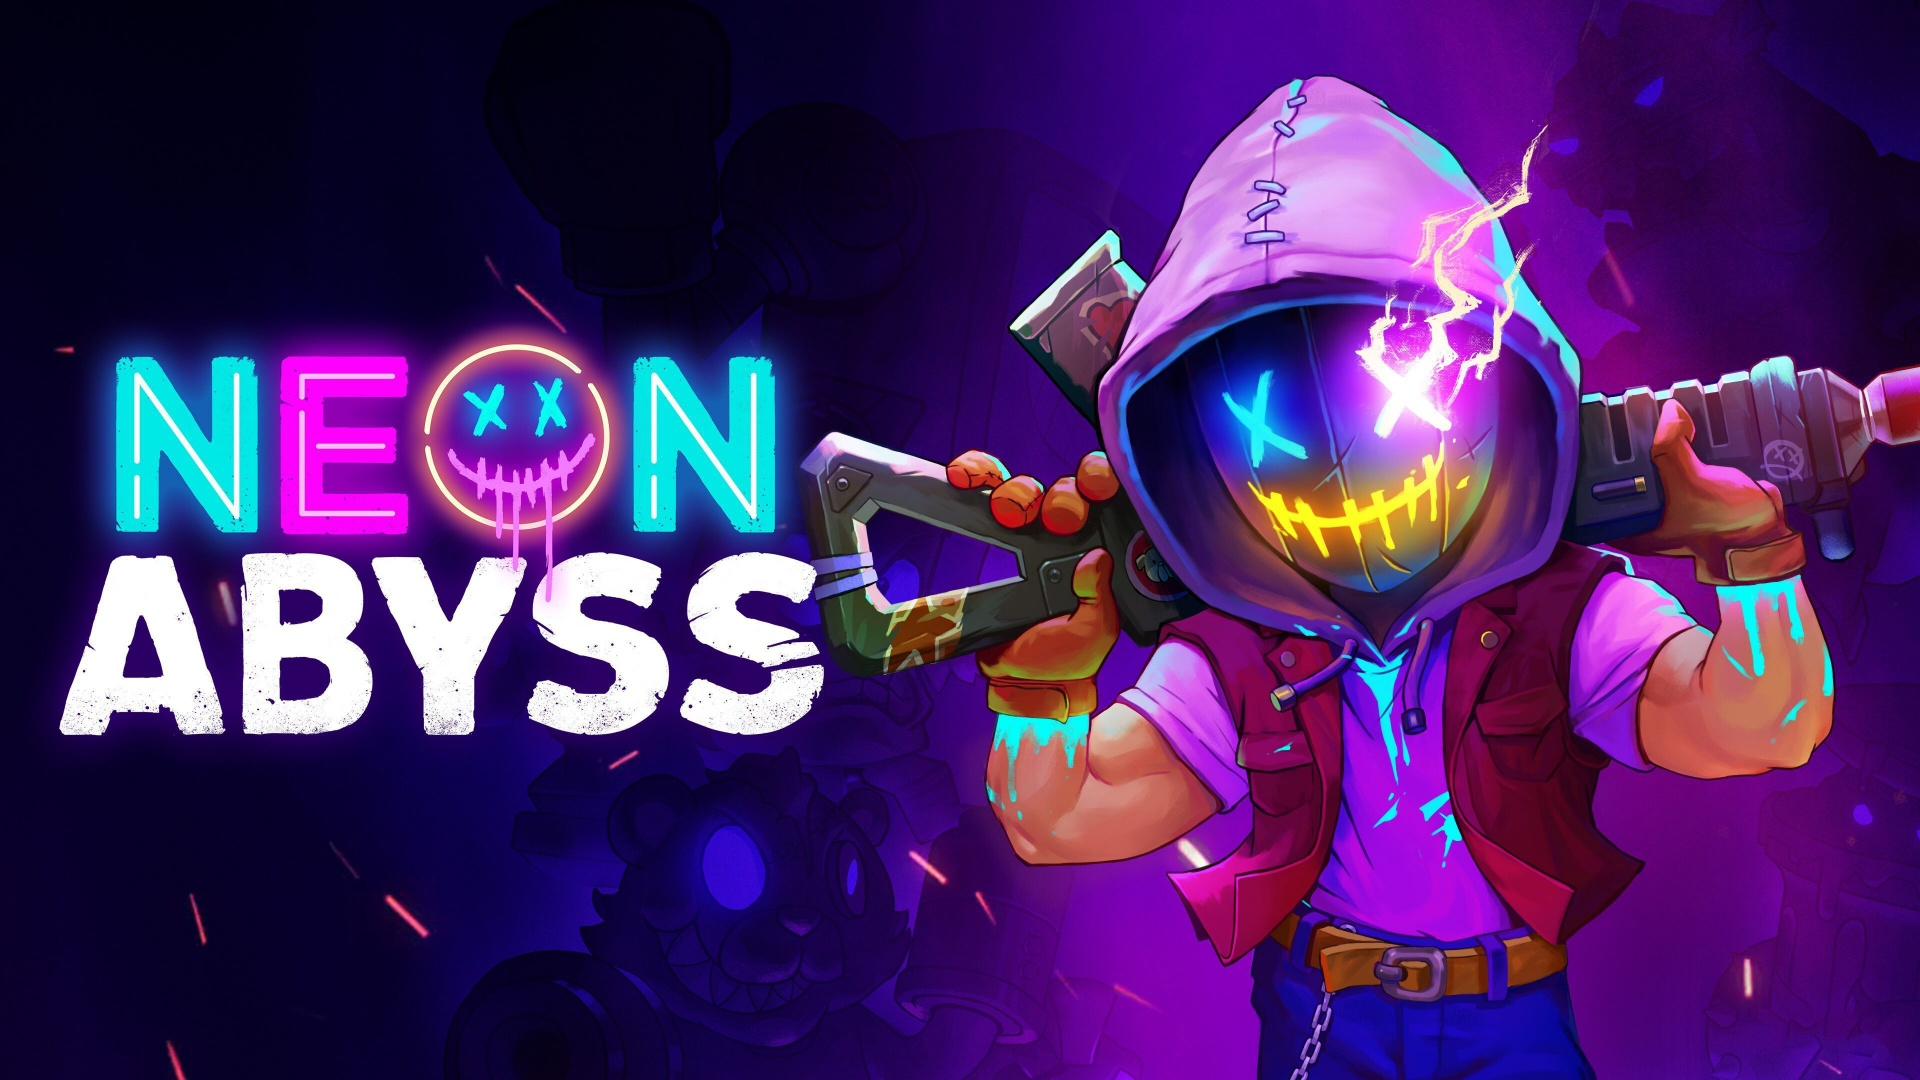 neon abyss playstation 4 xbox one nintendo switch pc games 1920x1080 1487